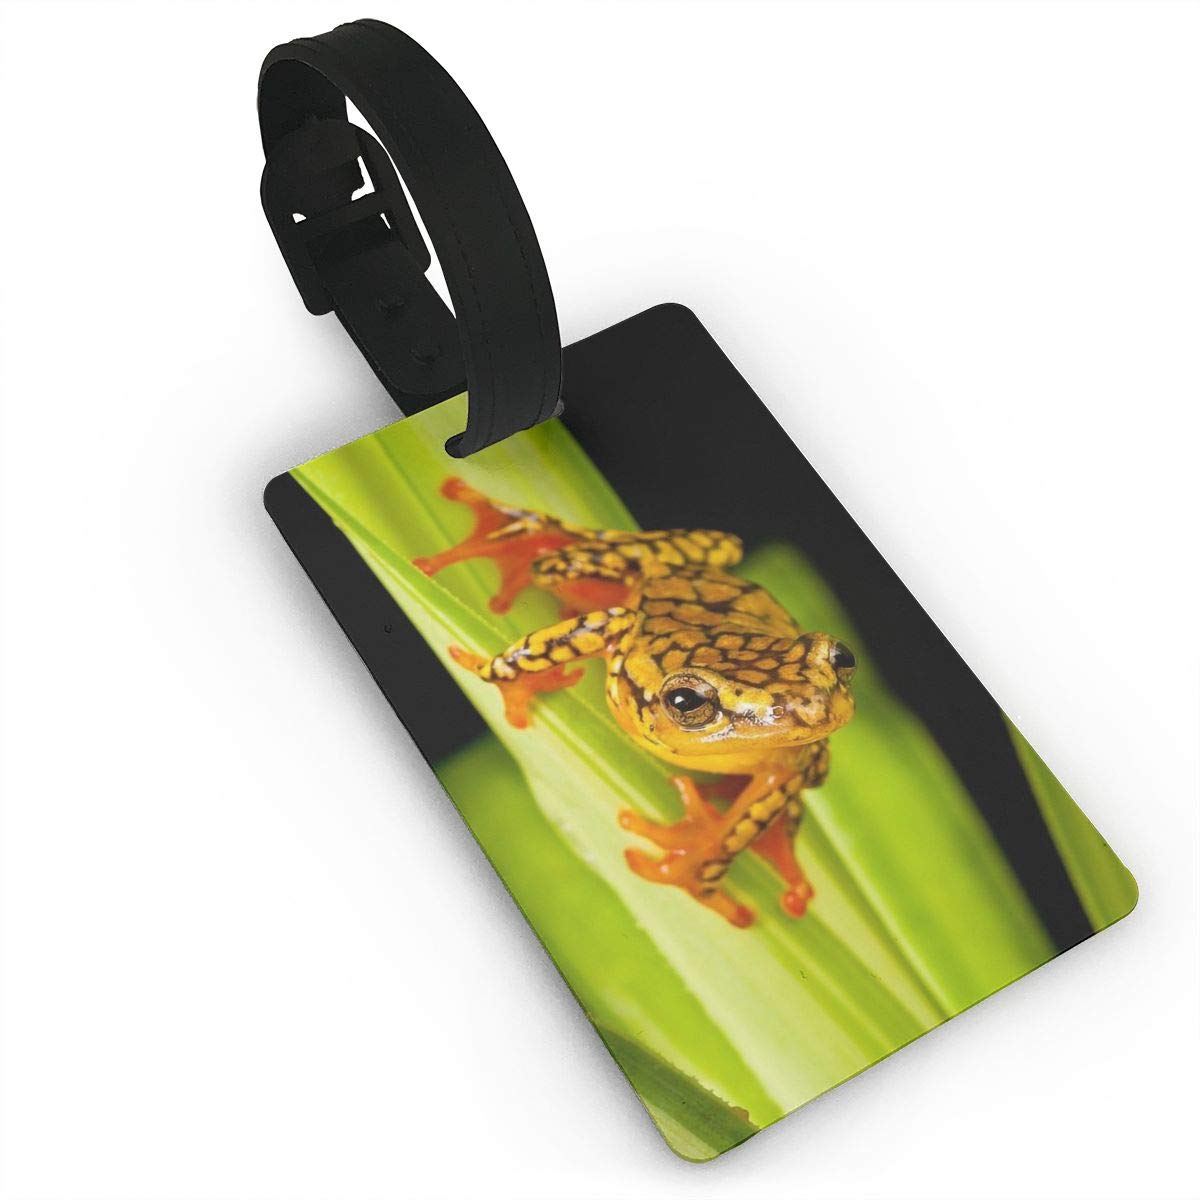 Frog Baggage Tag For Travel Tags Accessories 2 Pack Luggage Tags